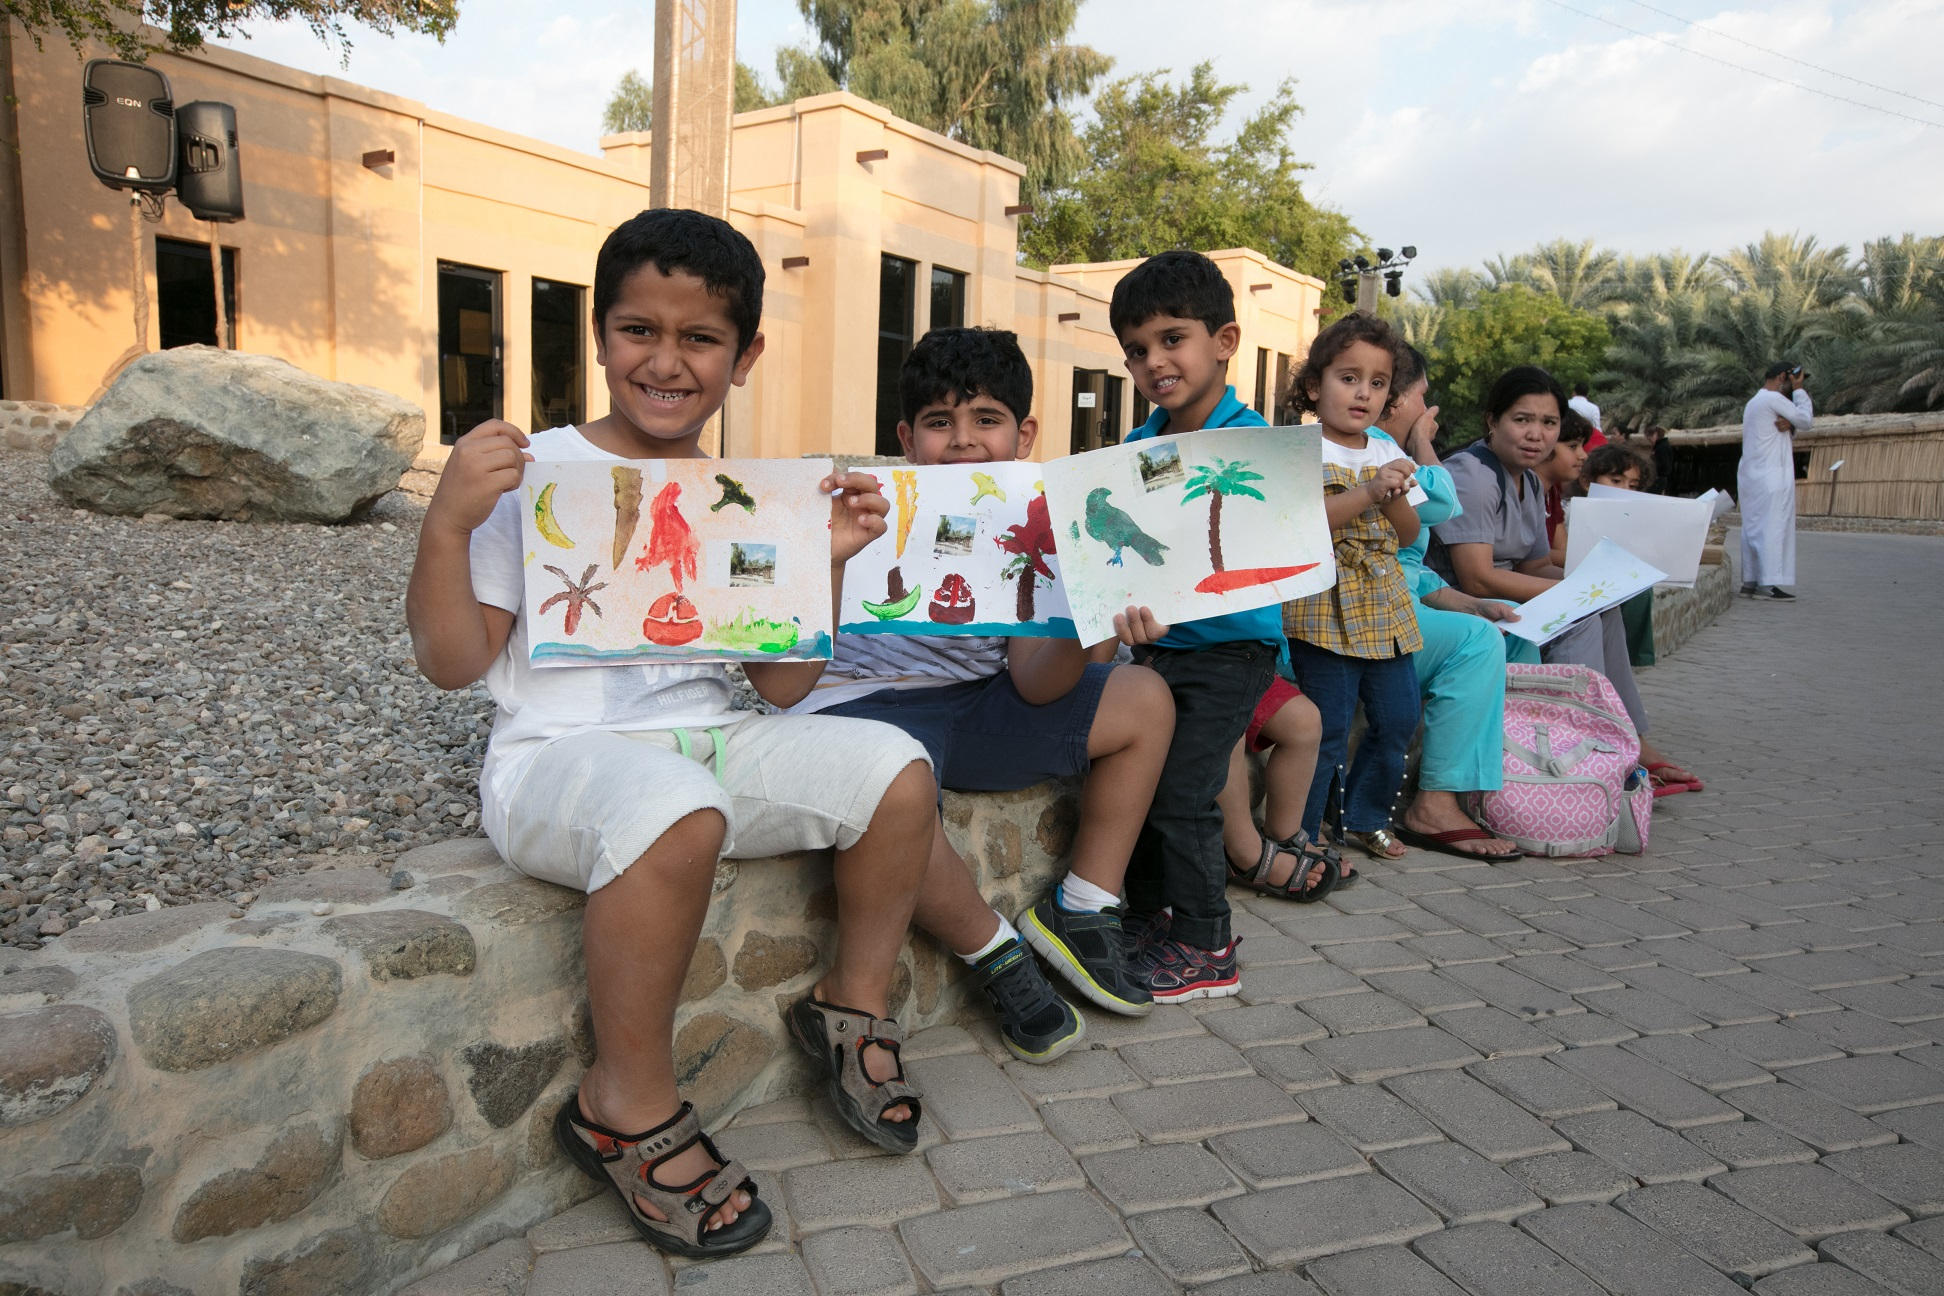 weekends at oasis workshops brings arts and crafts to al ain